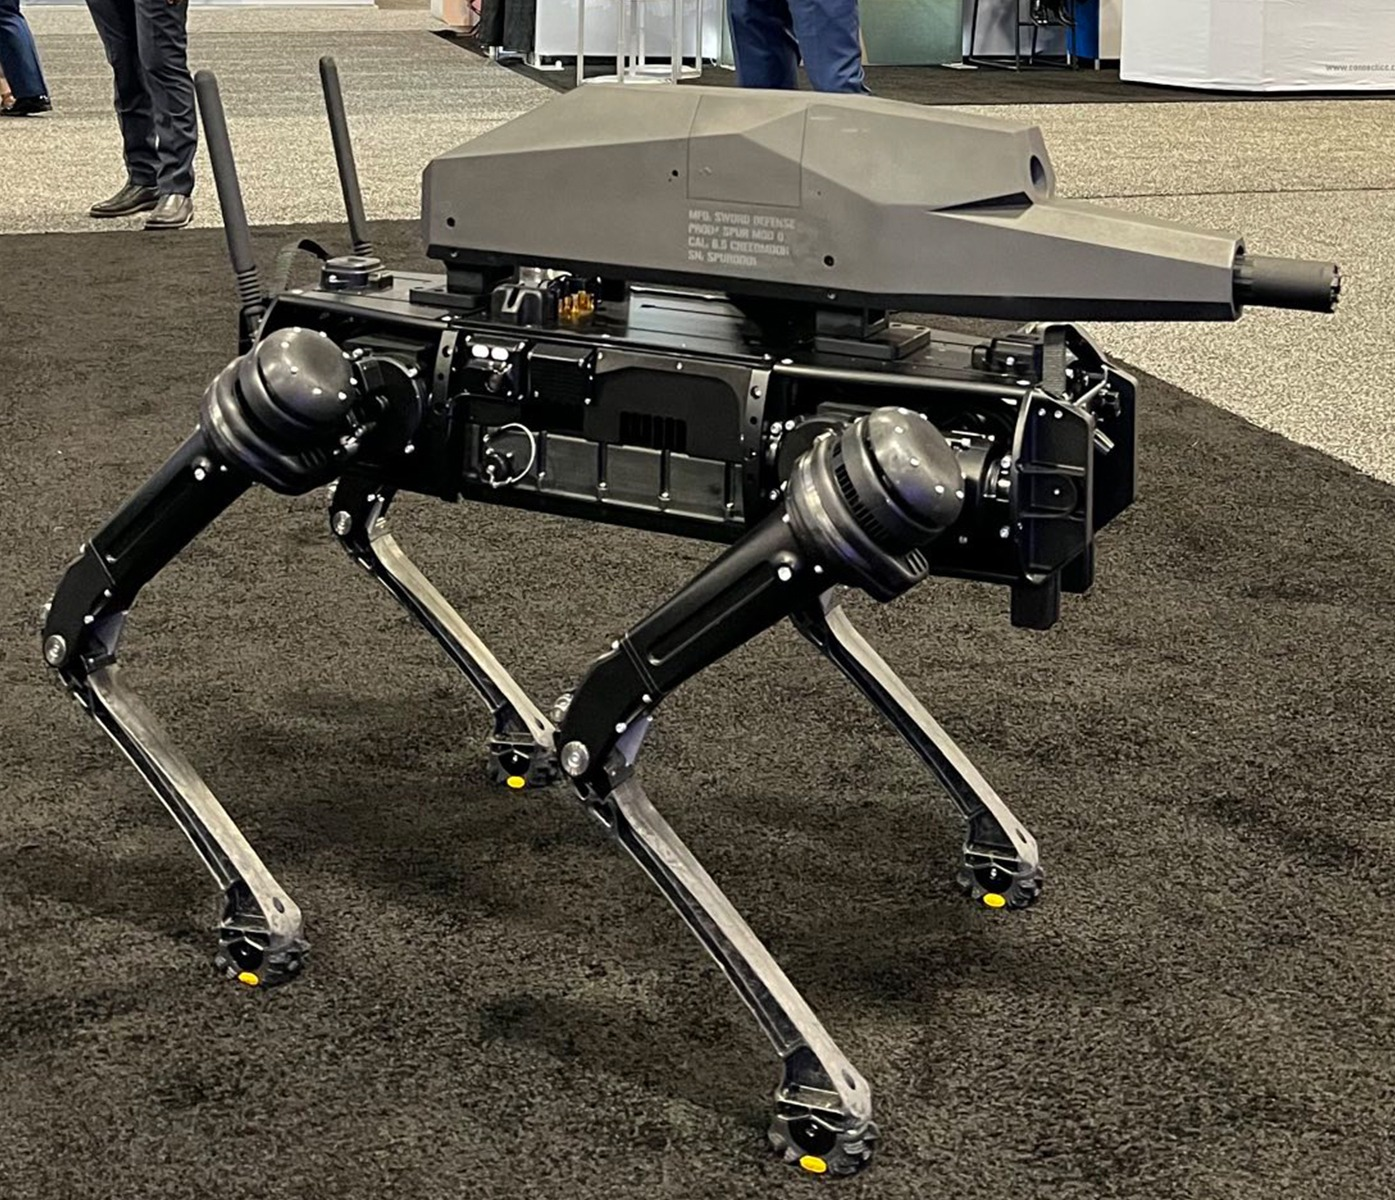 The SPUR-5, special purpose unmanned rifle, is built by Sword Defense and mounted on a robot built by Ghost Robotics.